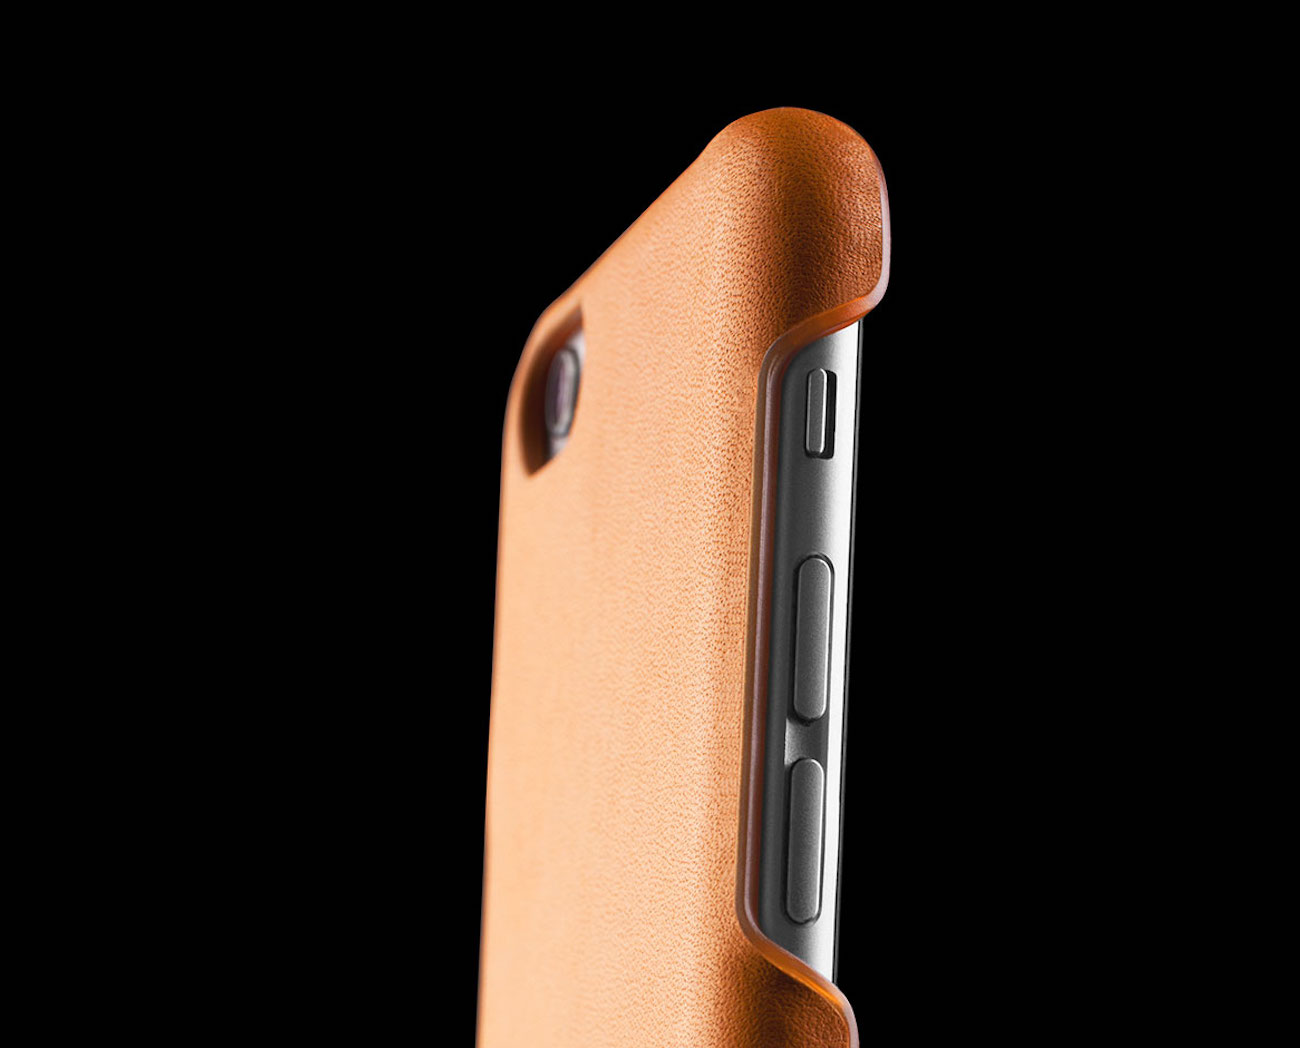 leather-iphone-6s-and-6s-plus-case-by-mujjo-05